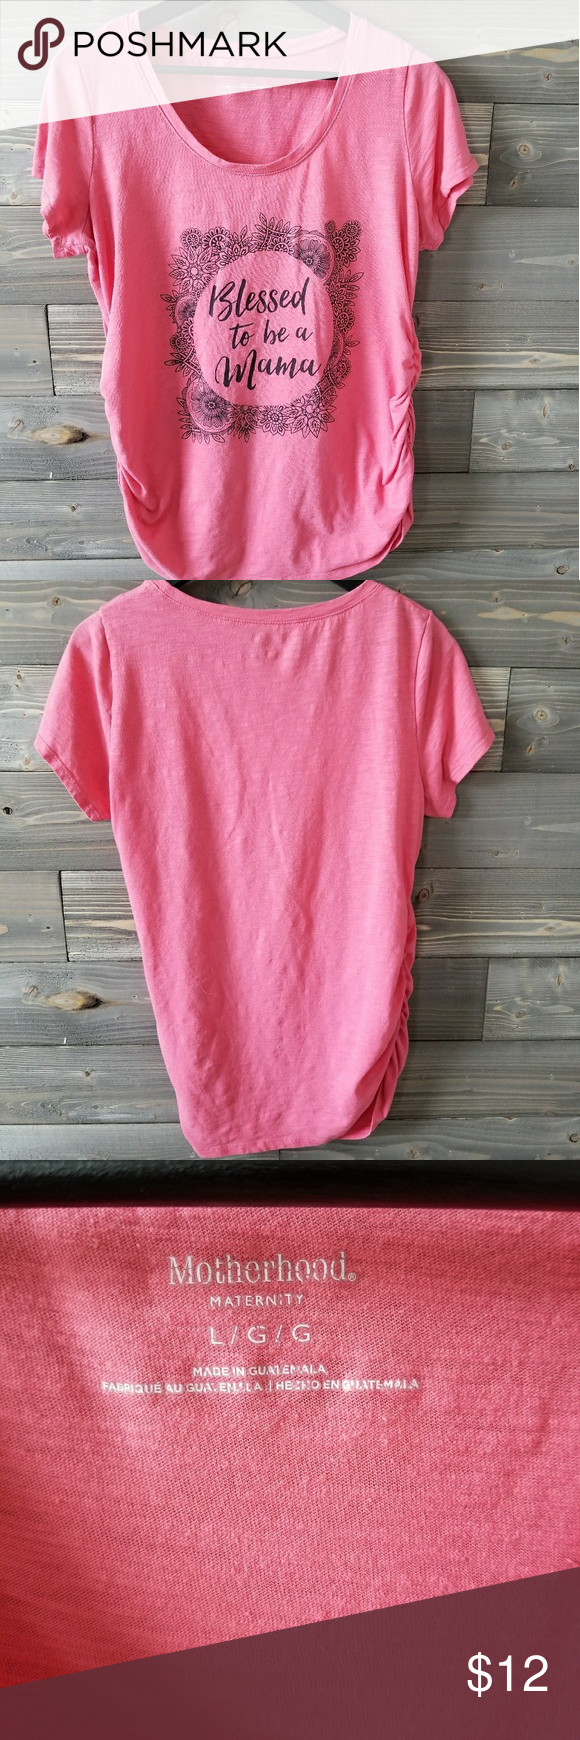 "Motherhood Maternity top size L. Soft cotton tee shirt form Motherhood Maternity size L. Nice pink color, with ""Proud to be a mama"" printed on the front in black. Motherhood Maternity Tops Tees - Short Sleeve"